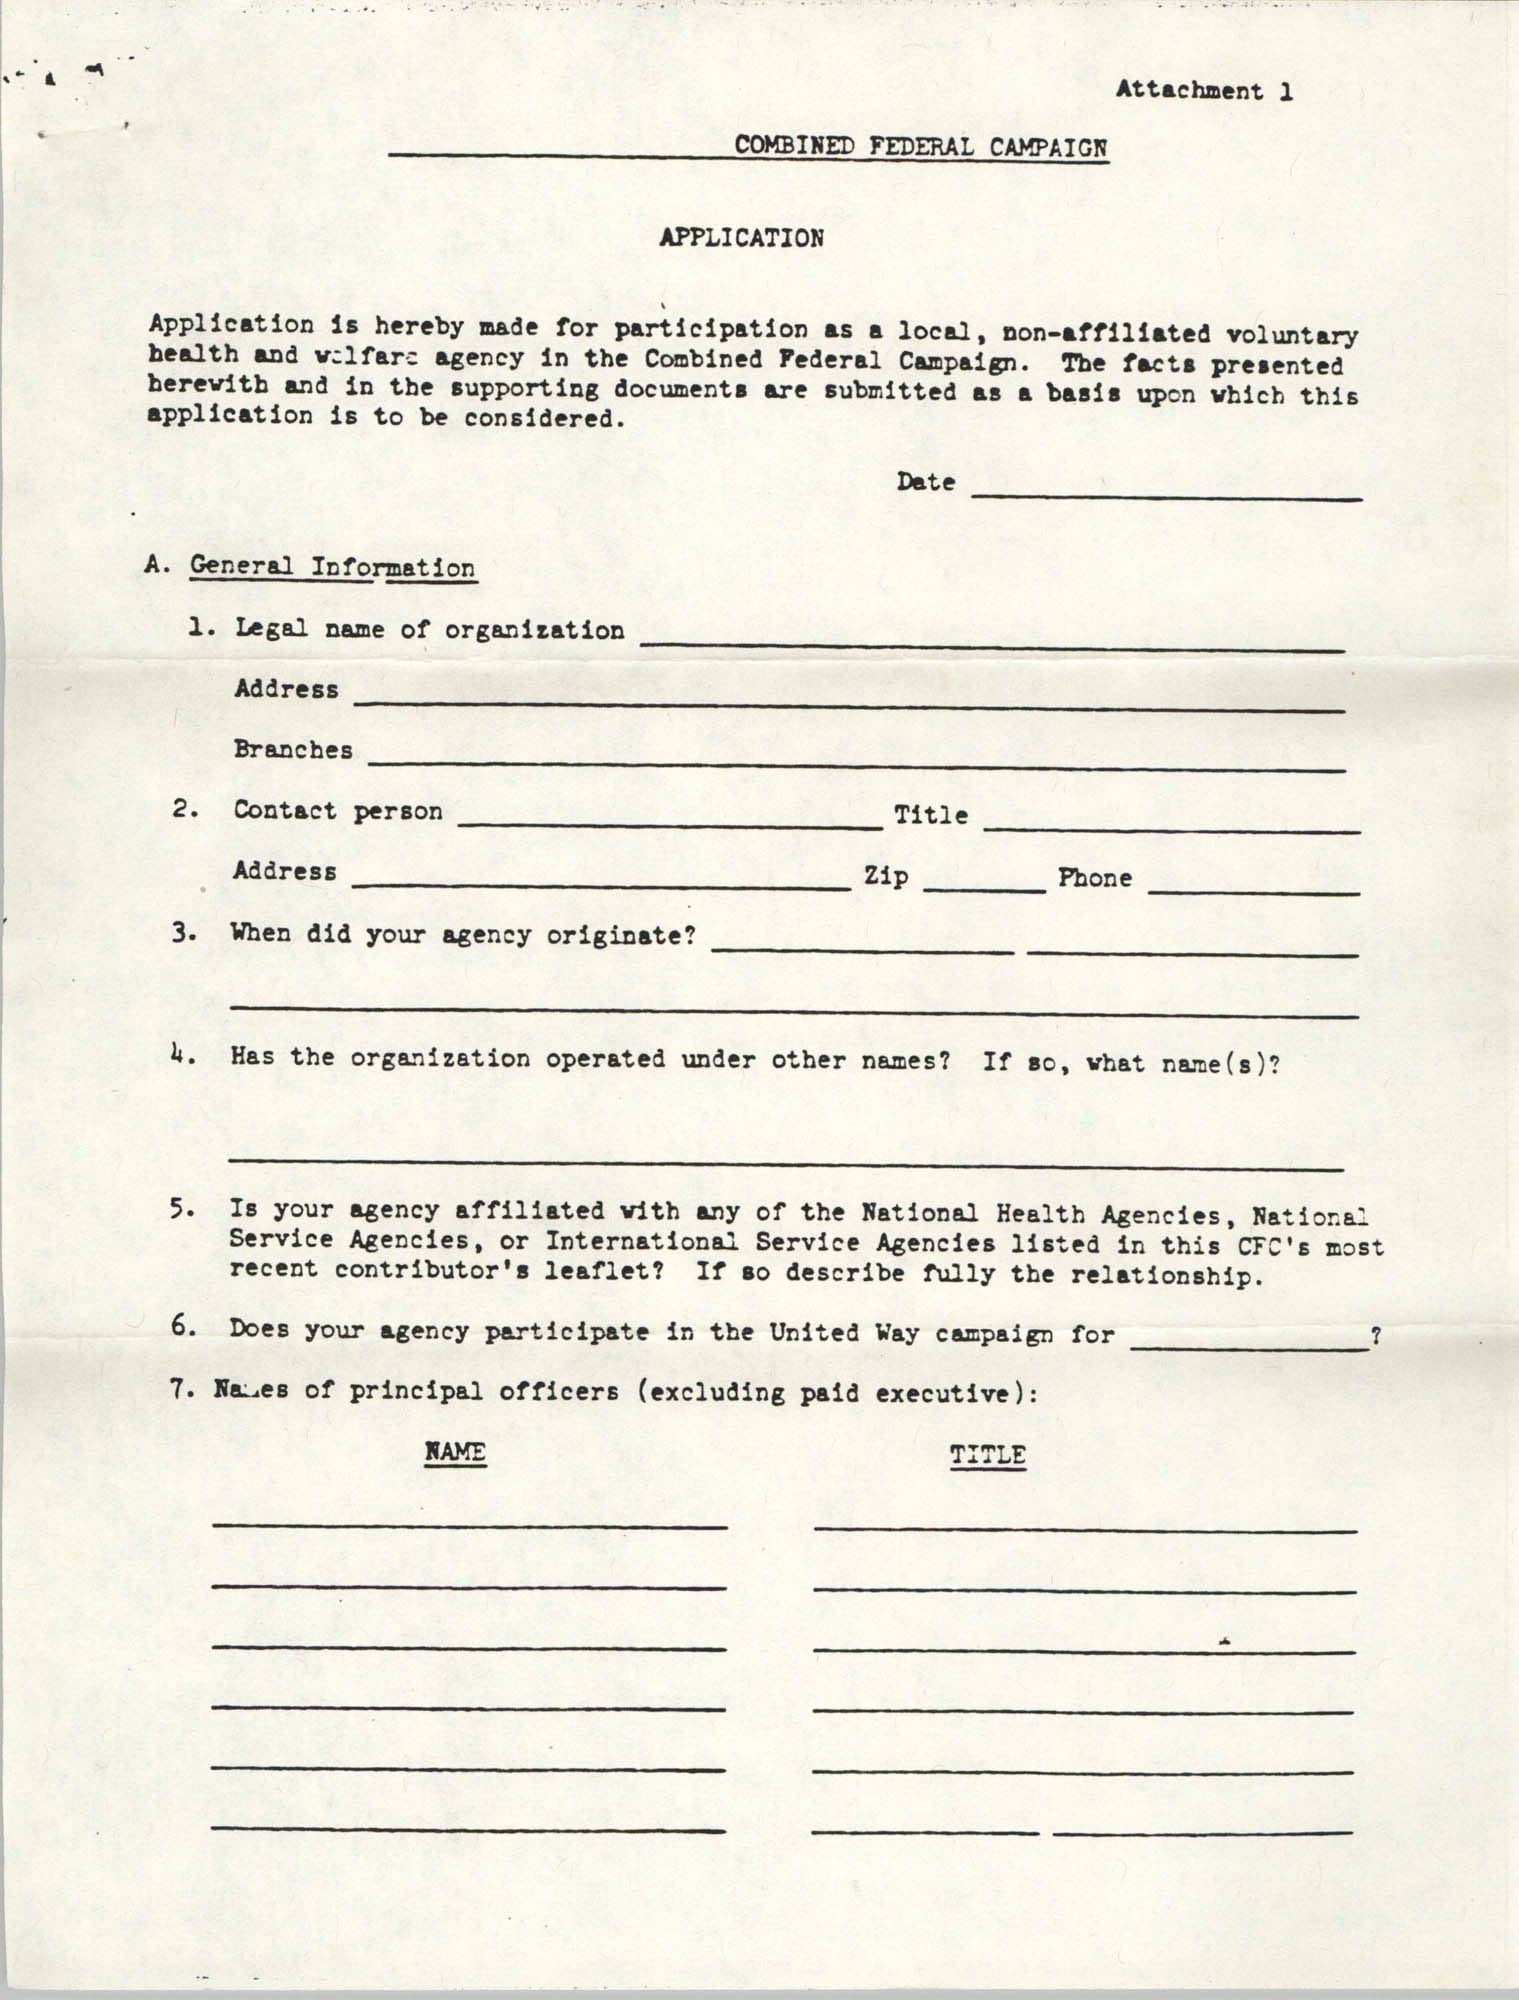 Combined Federal Campaign Application, Page 1